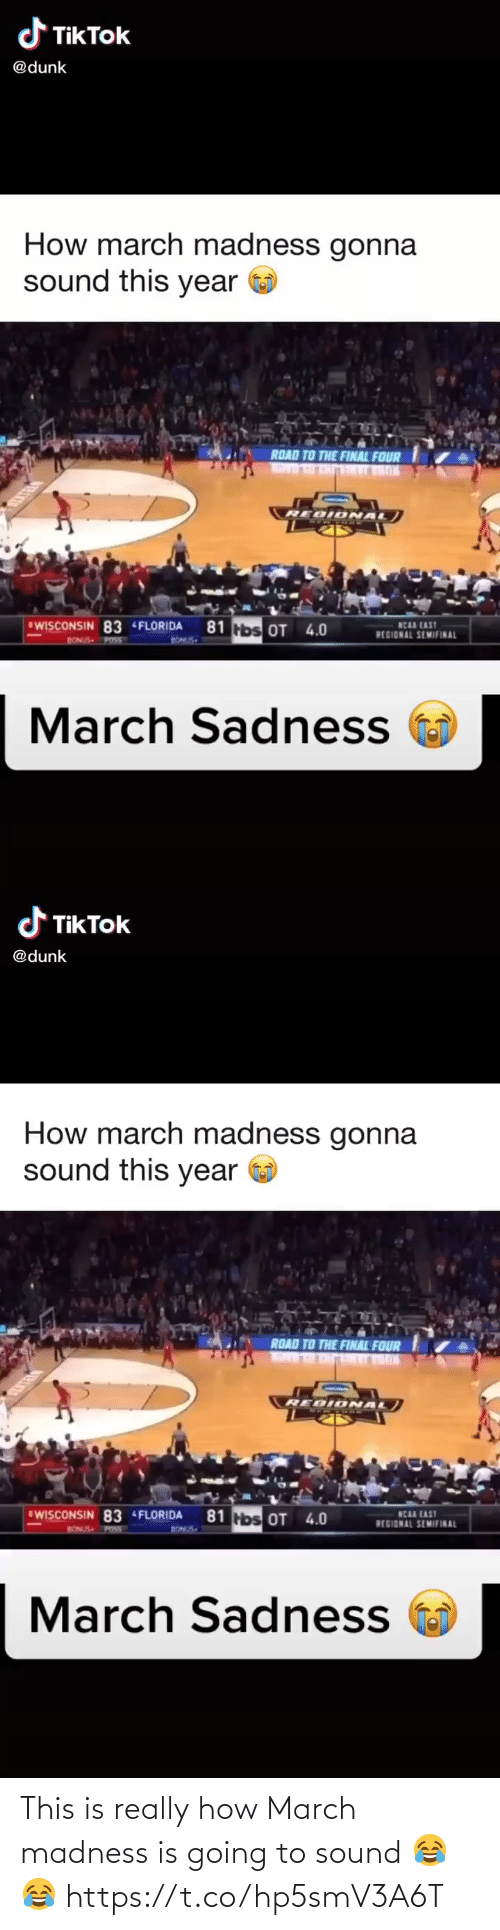 madness: This is really how March madness is going to sound 😂😂 https://t.co/hp5smV3A6T